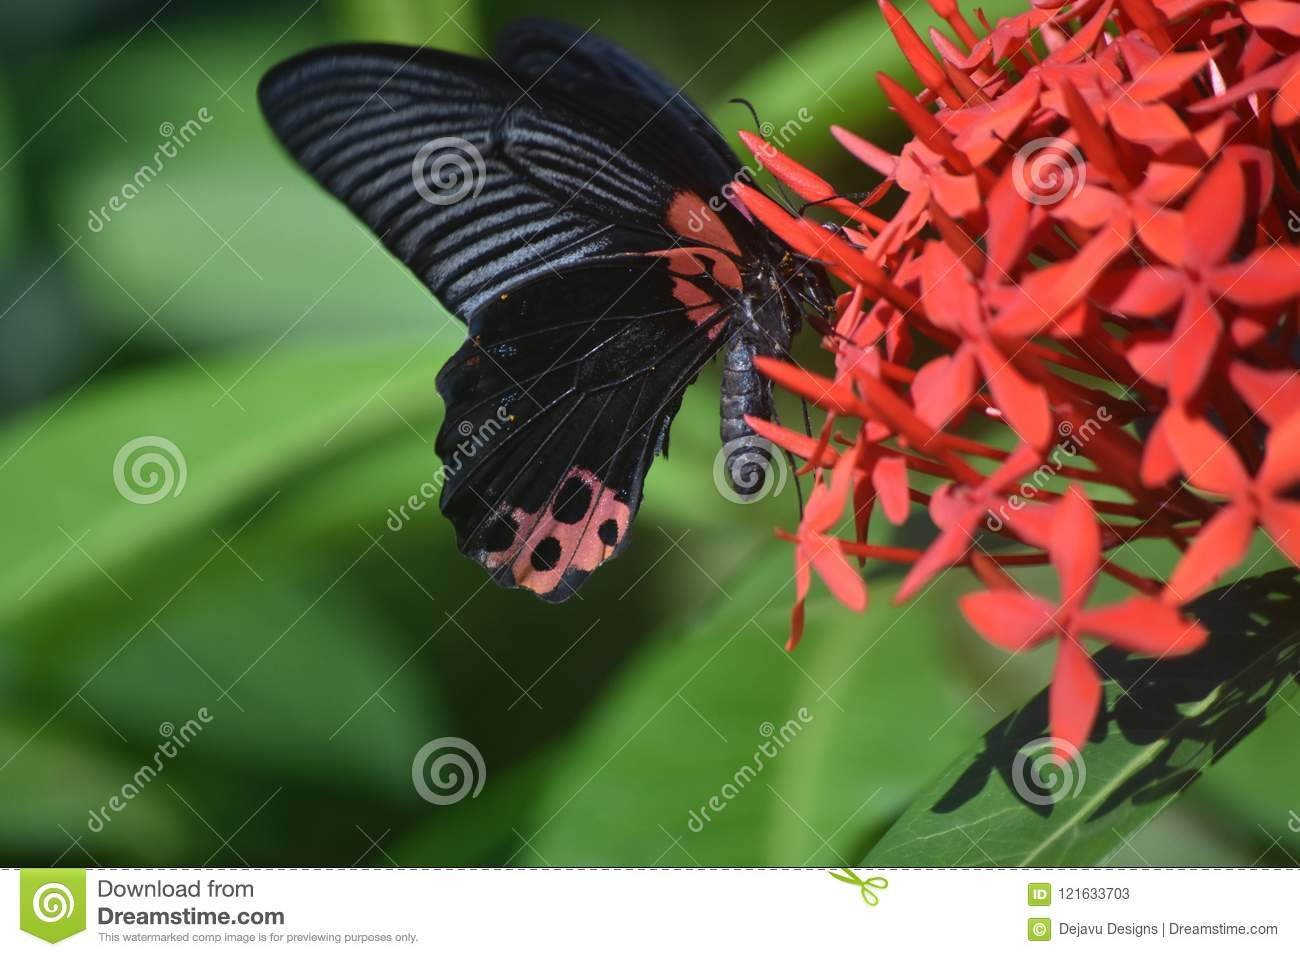 Gorgeous Winged Scarlet Mormon Butterfly On Red Flowers Stock Image